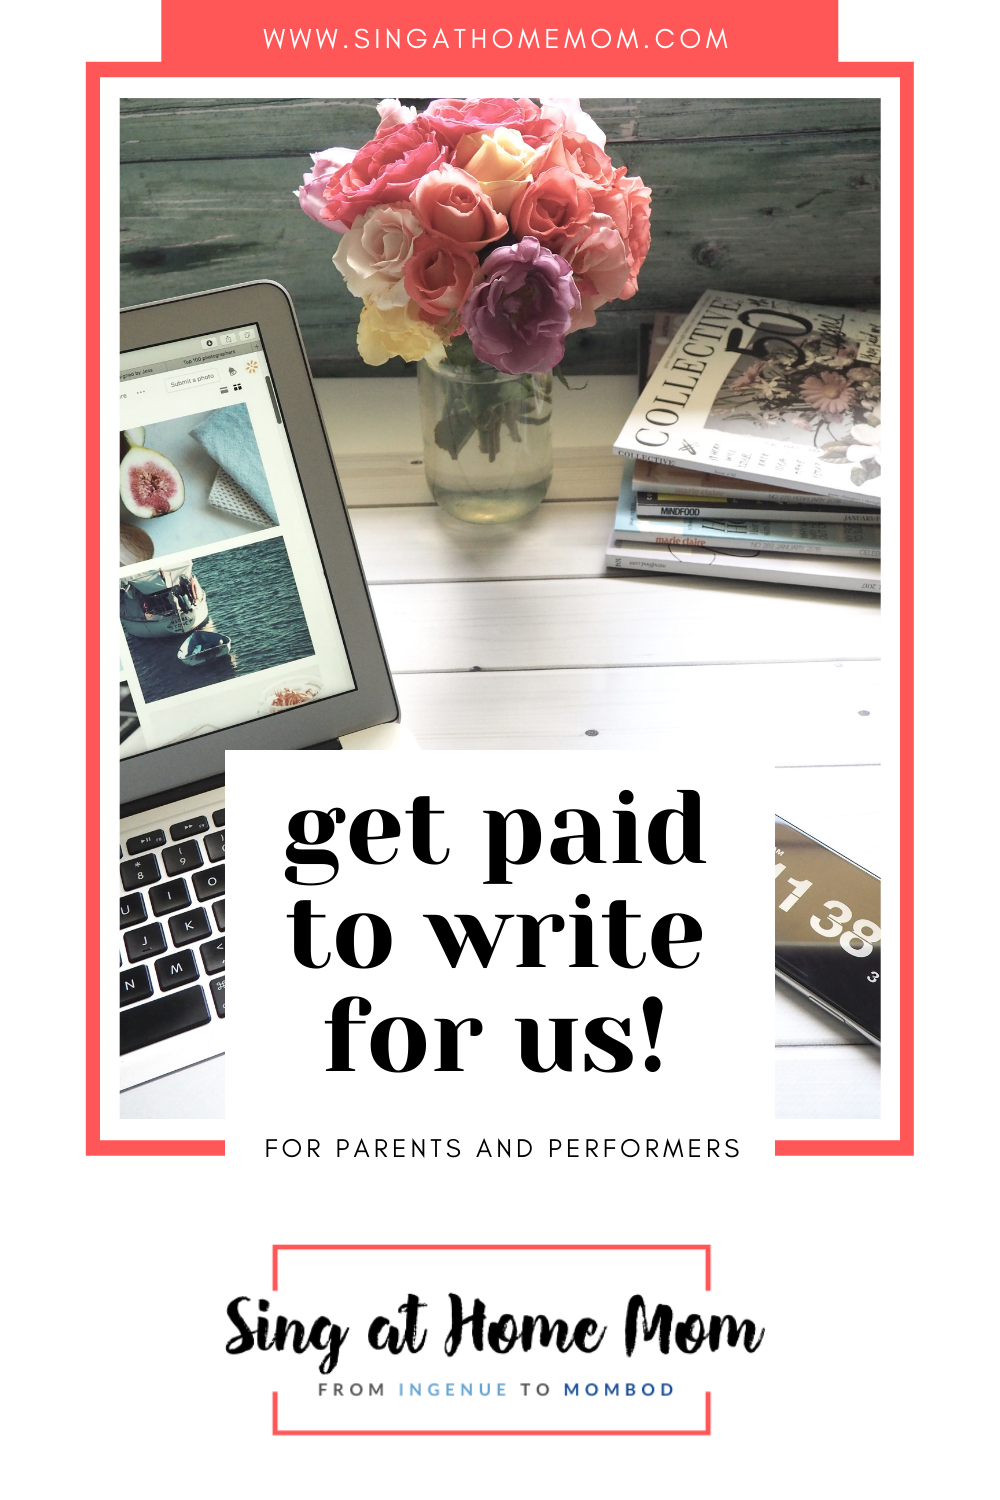 laptop with flowers and text that says get paid to write a blog